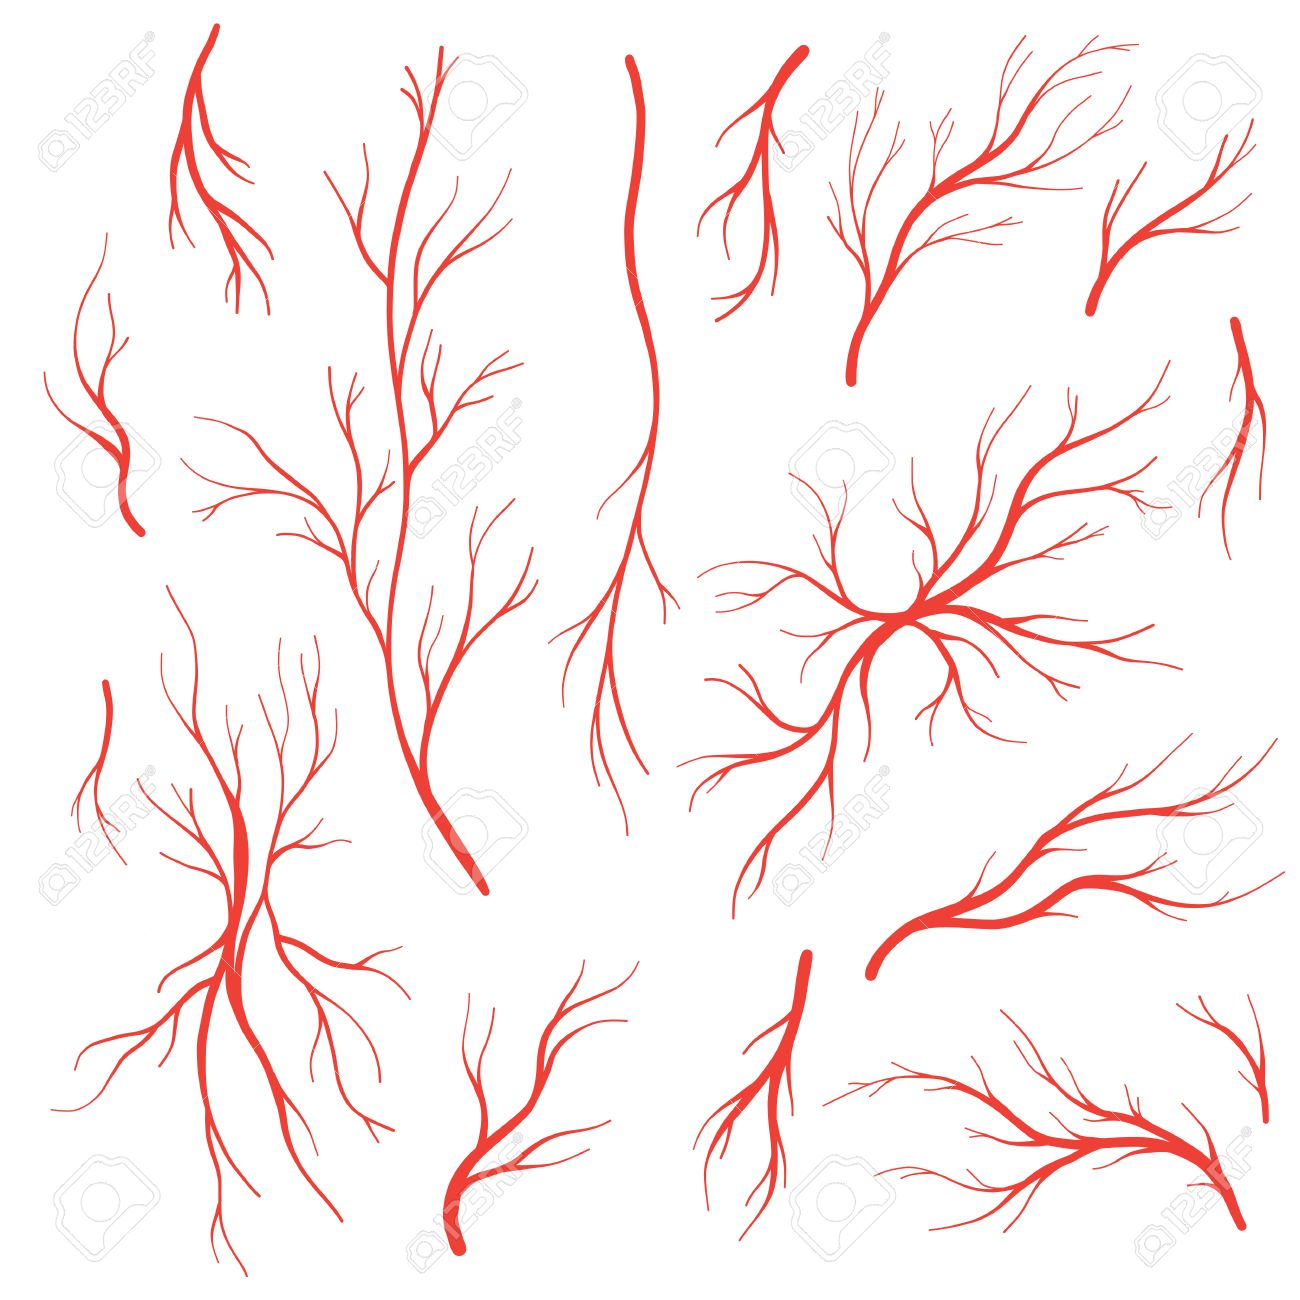 Human Eye Veins And Arteries Red Blood Vessels Blood System Vector